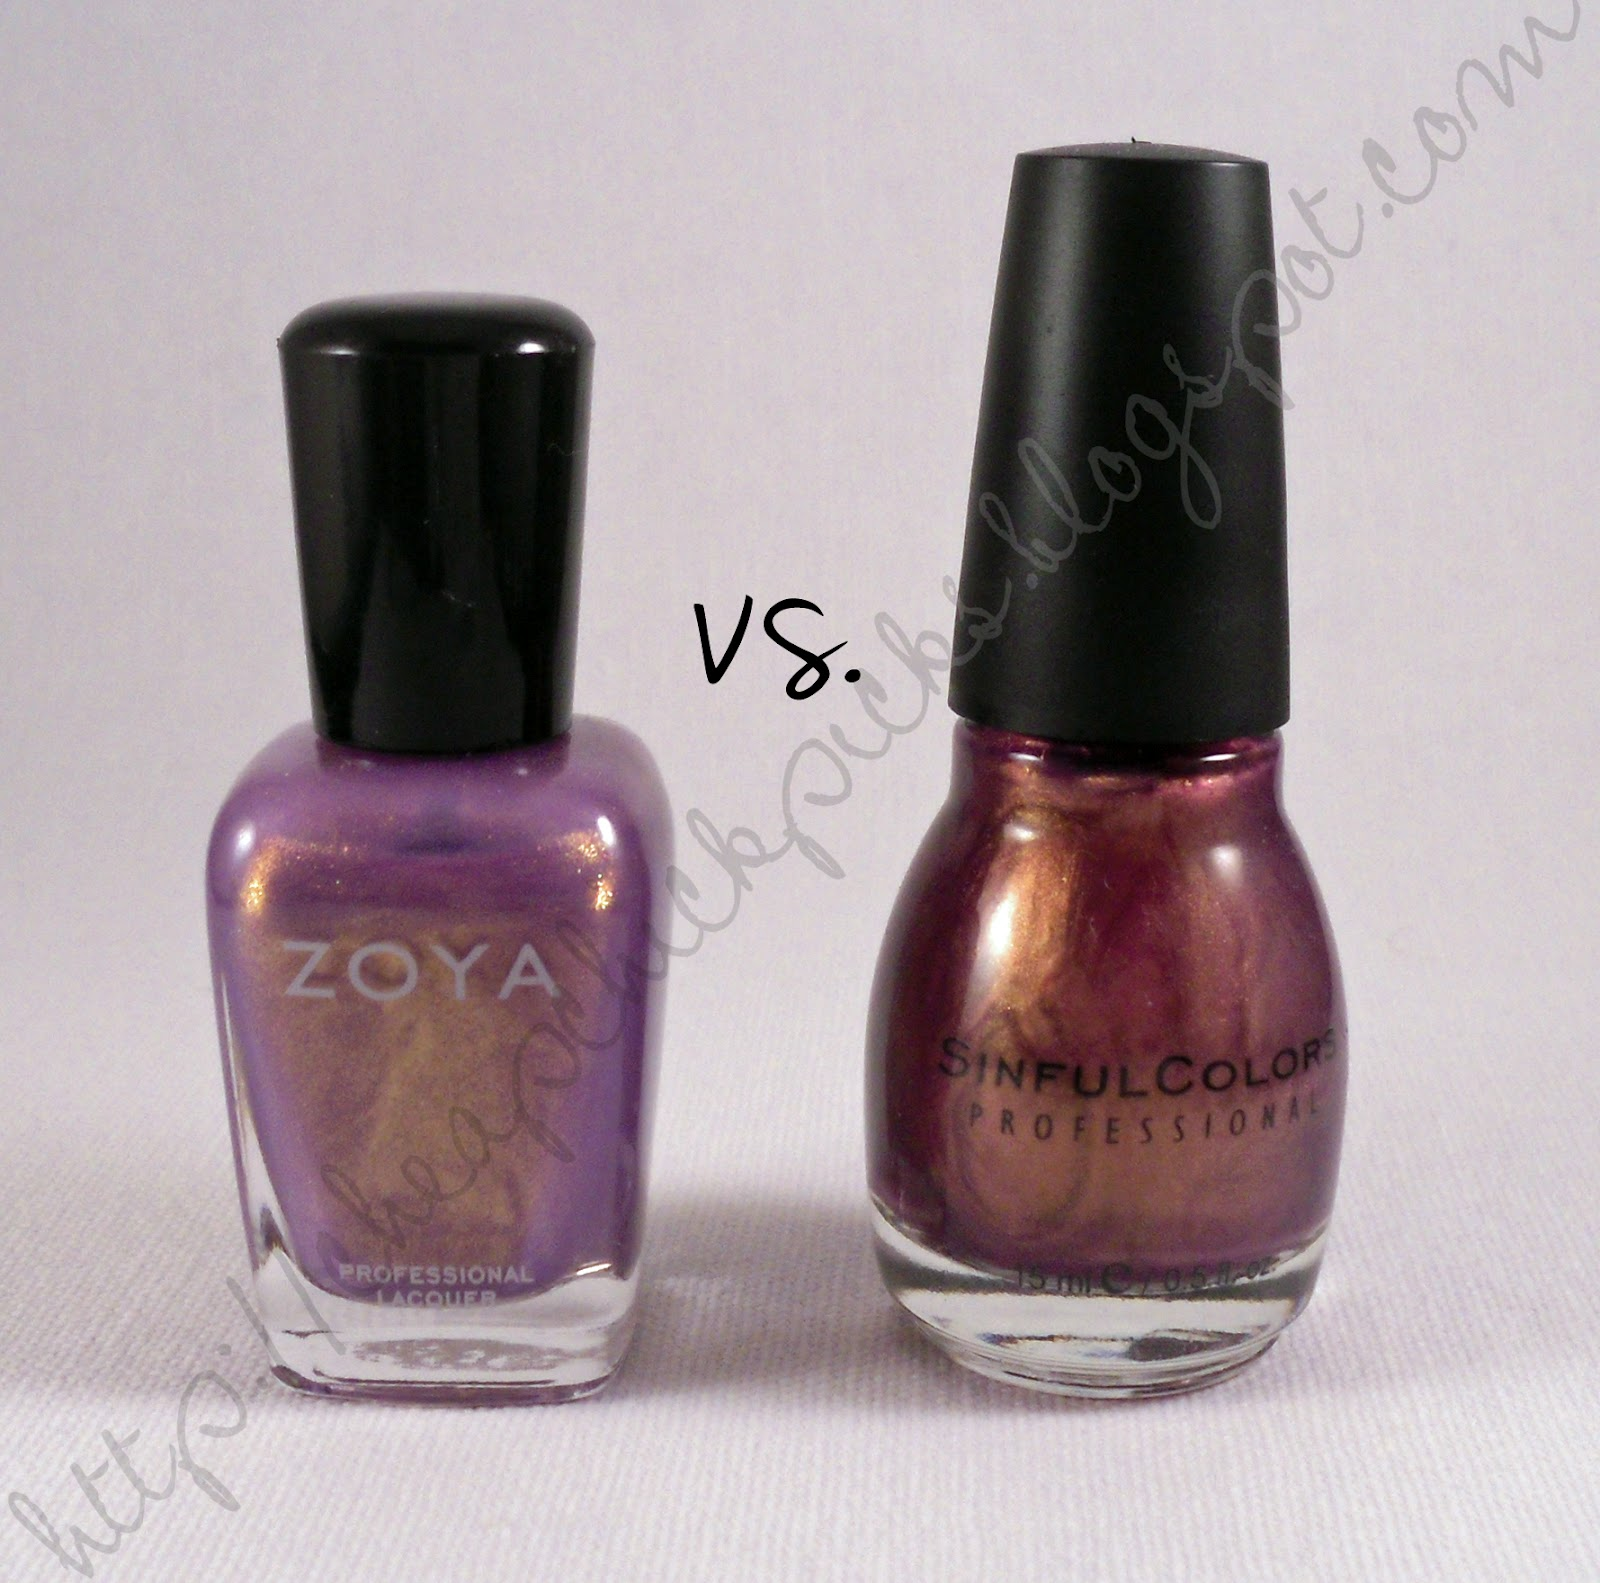 Zoya Zara  Sinful Colors Shausha  artificial lighting  no flashZoya Zara